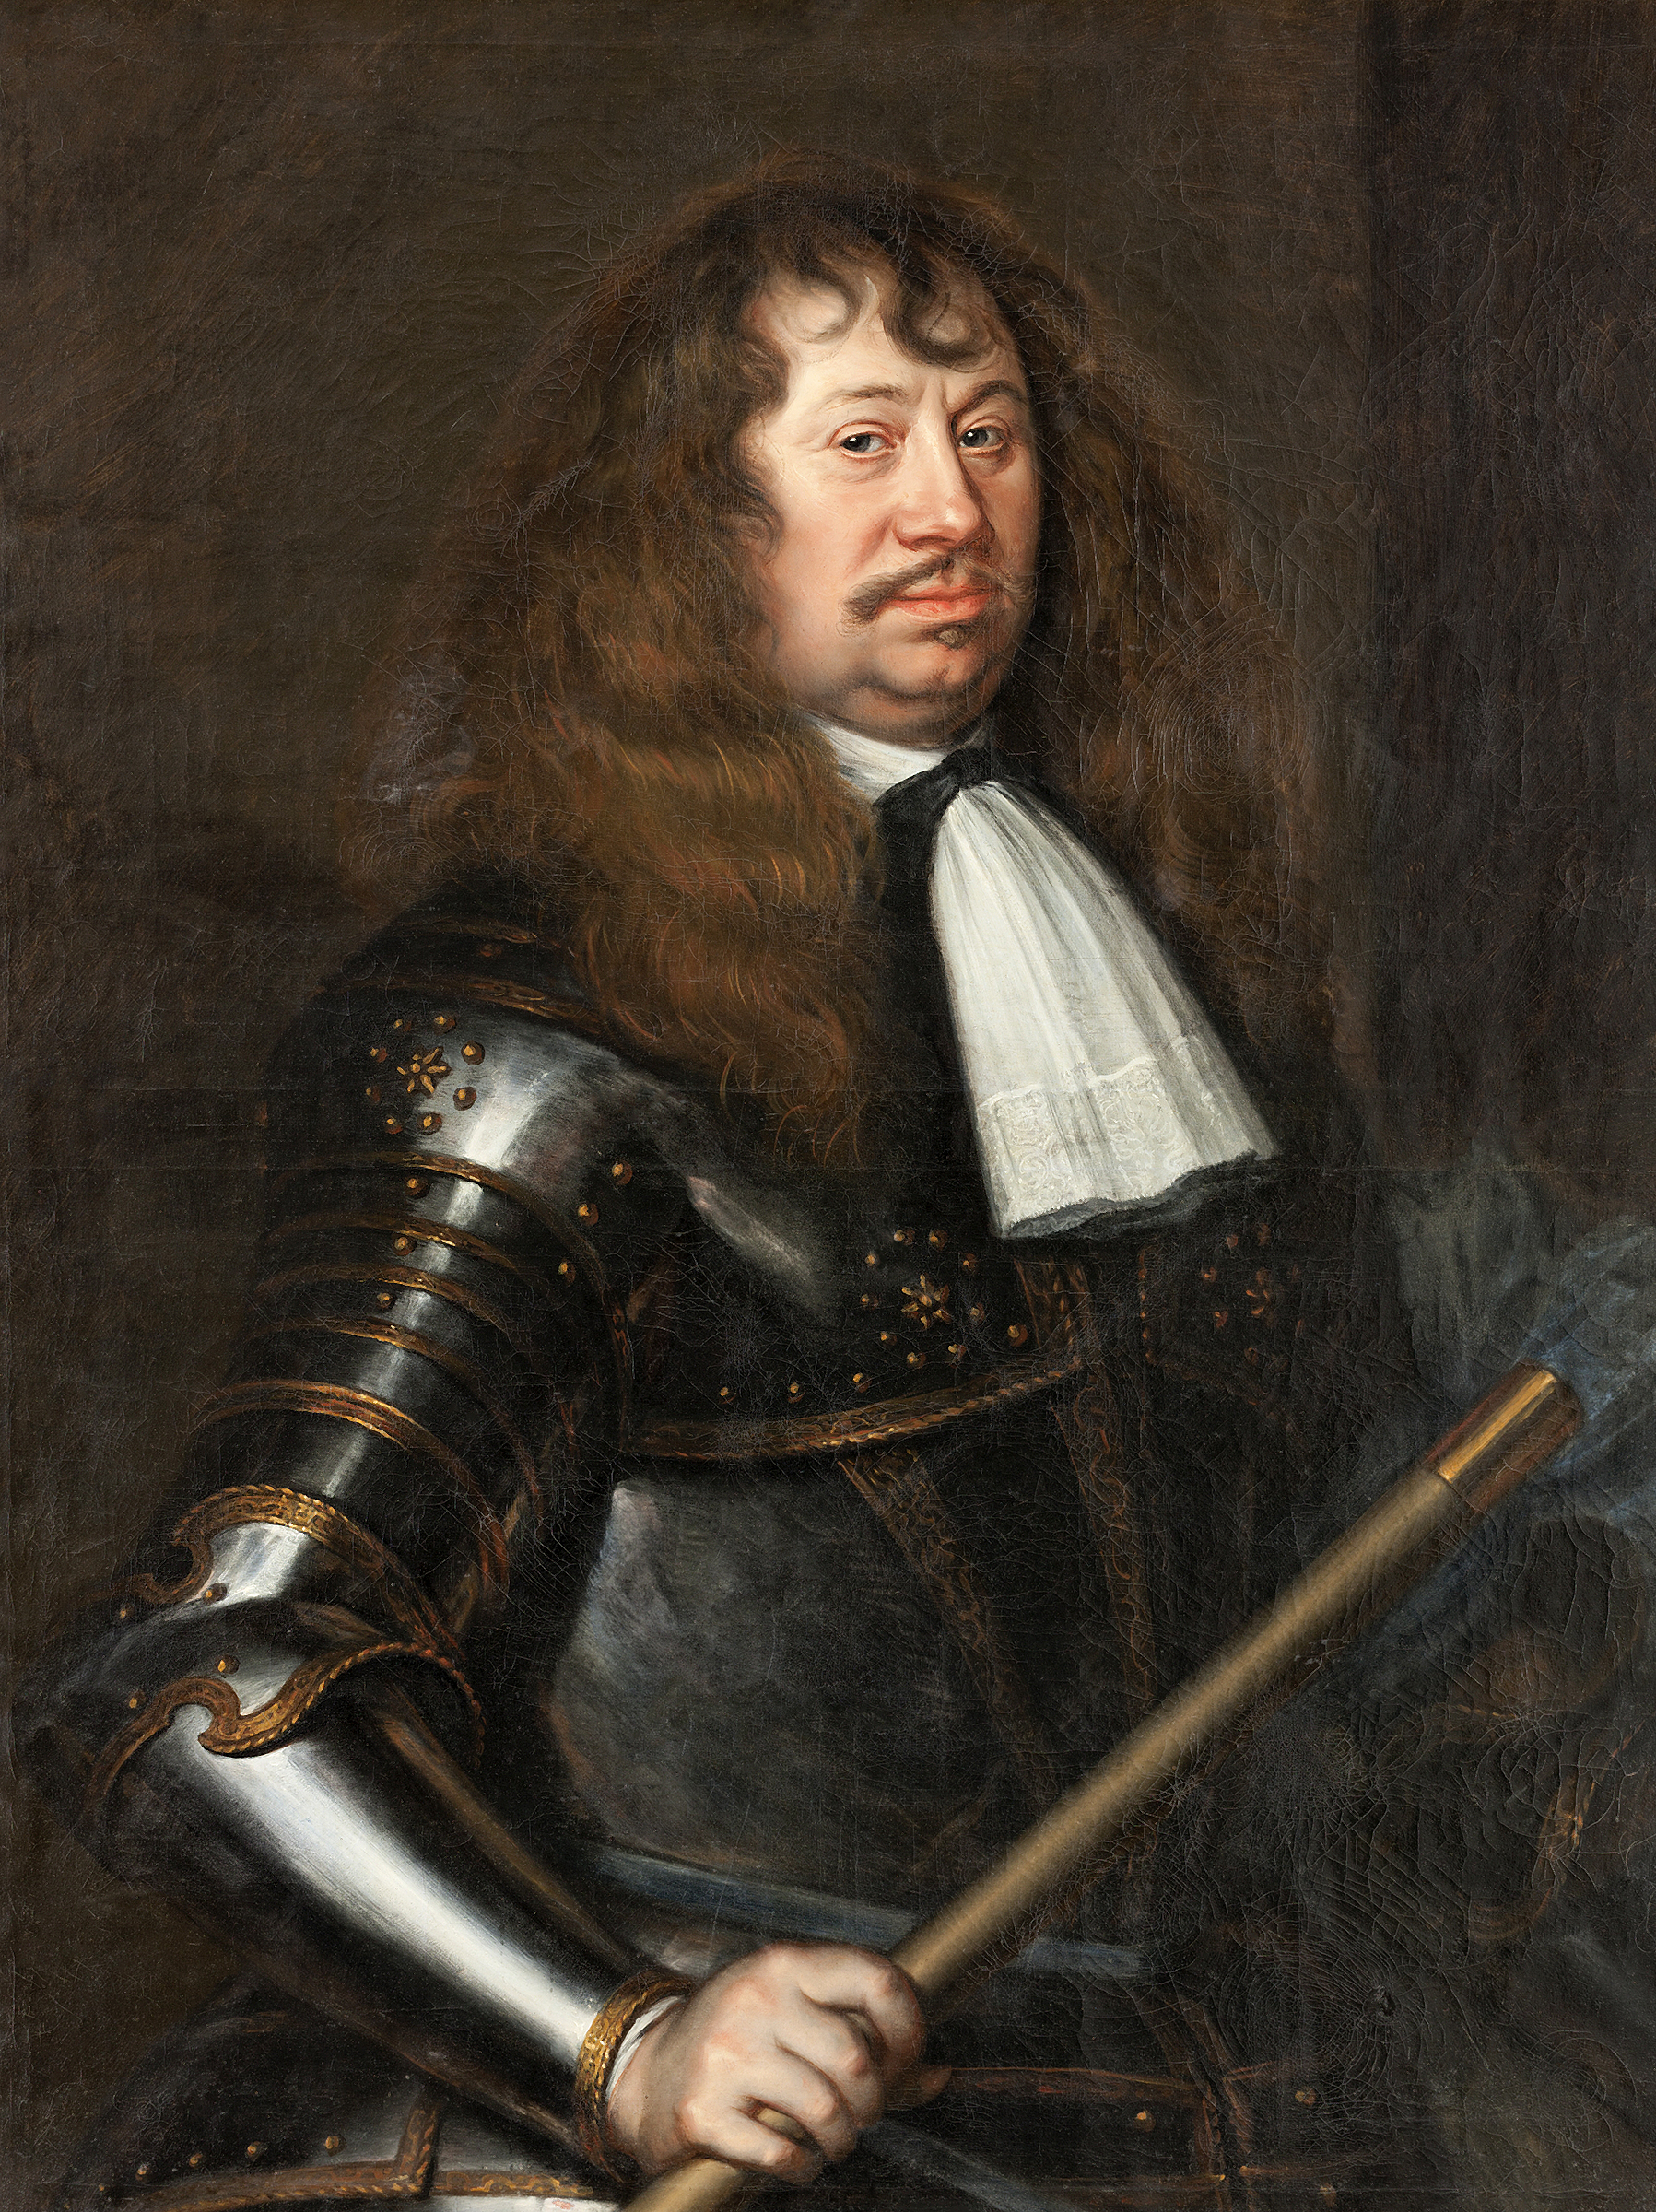 Portrait of Carl Gustaf Wrangel (1613-1676), Count; Field Marshal of the Army of Sweden (1646), Commander-in-chief of the Swedish forces in Germany (1646-1648), Gouvernor-general of Swedish Pomerania (1648-1650; 1654-1676), Lord High Admiral of Sweden (1657-1676), Lord High Constable of Sweden (1664-1676) | Portraits of Kings